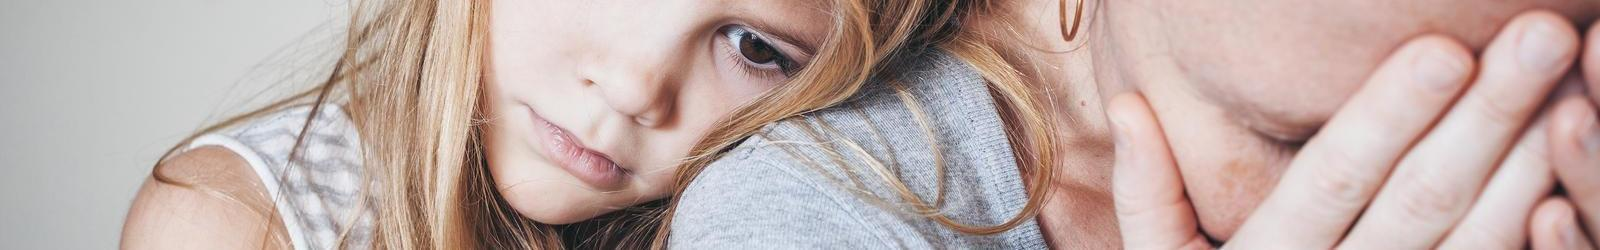 Emotional Abuse Therapy: What Is Emotional Abuse?